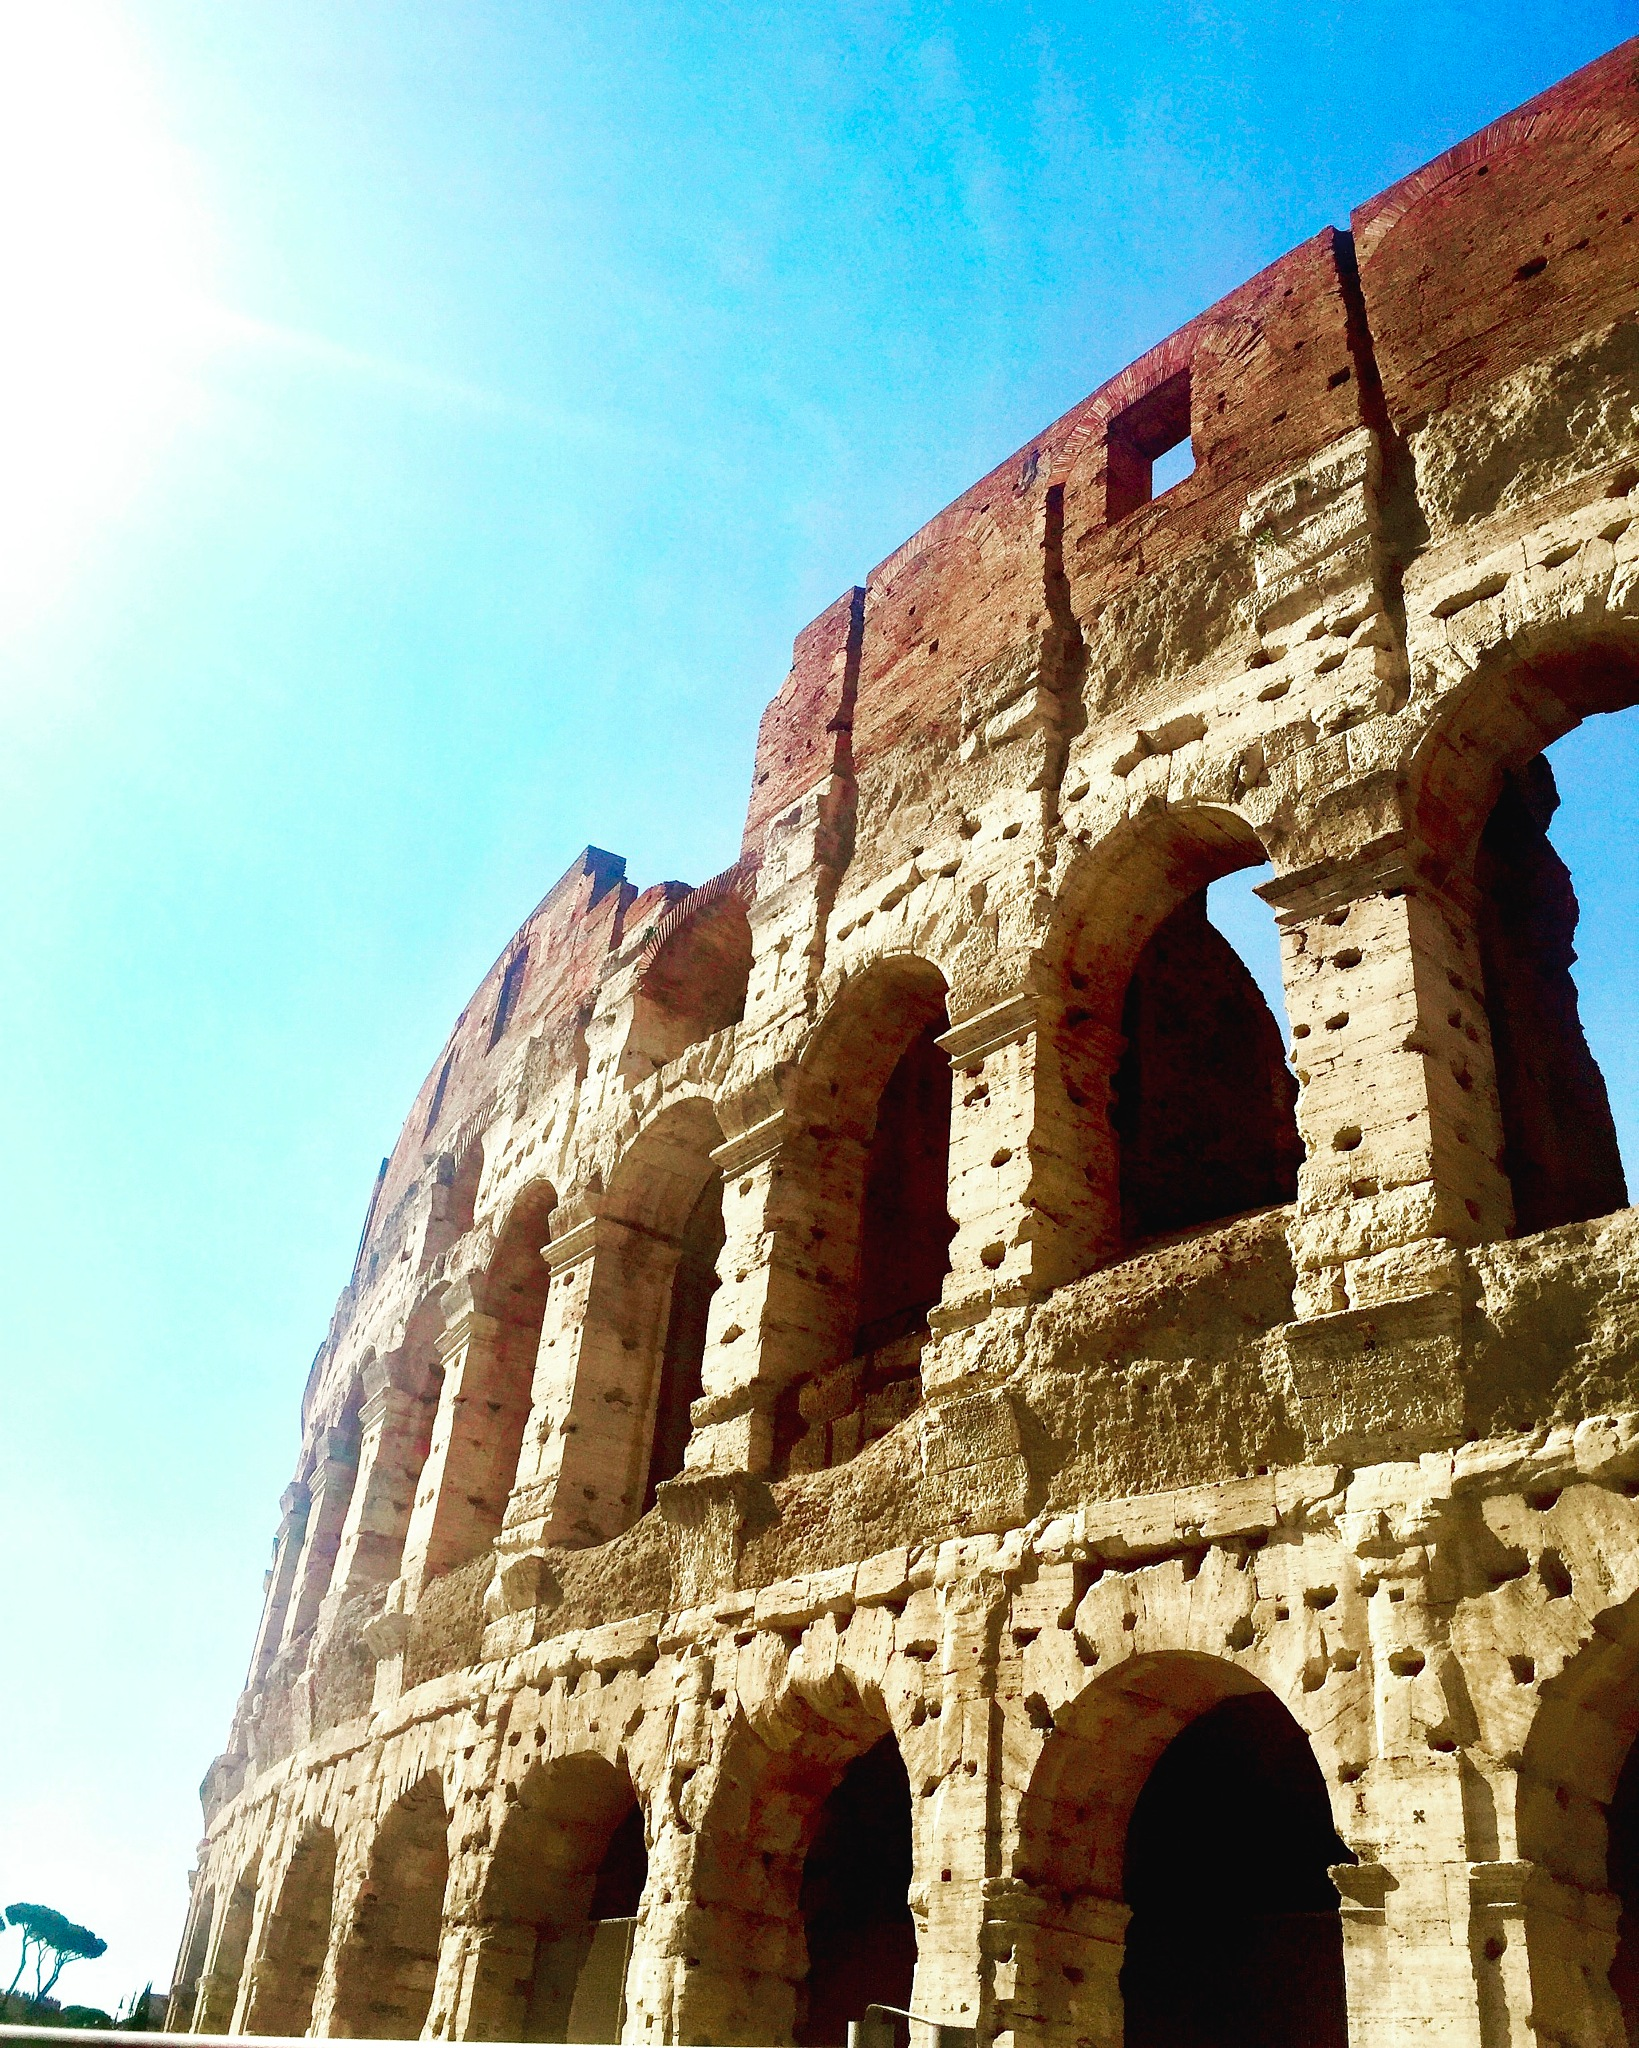 The Colosseum in Rome by stephengalvinn